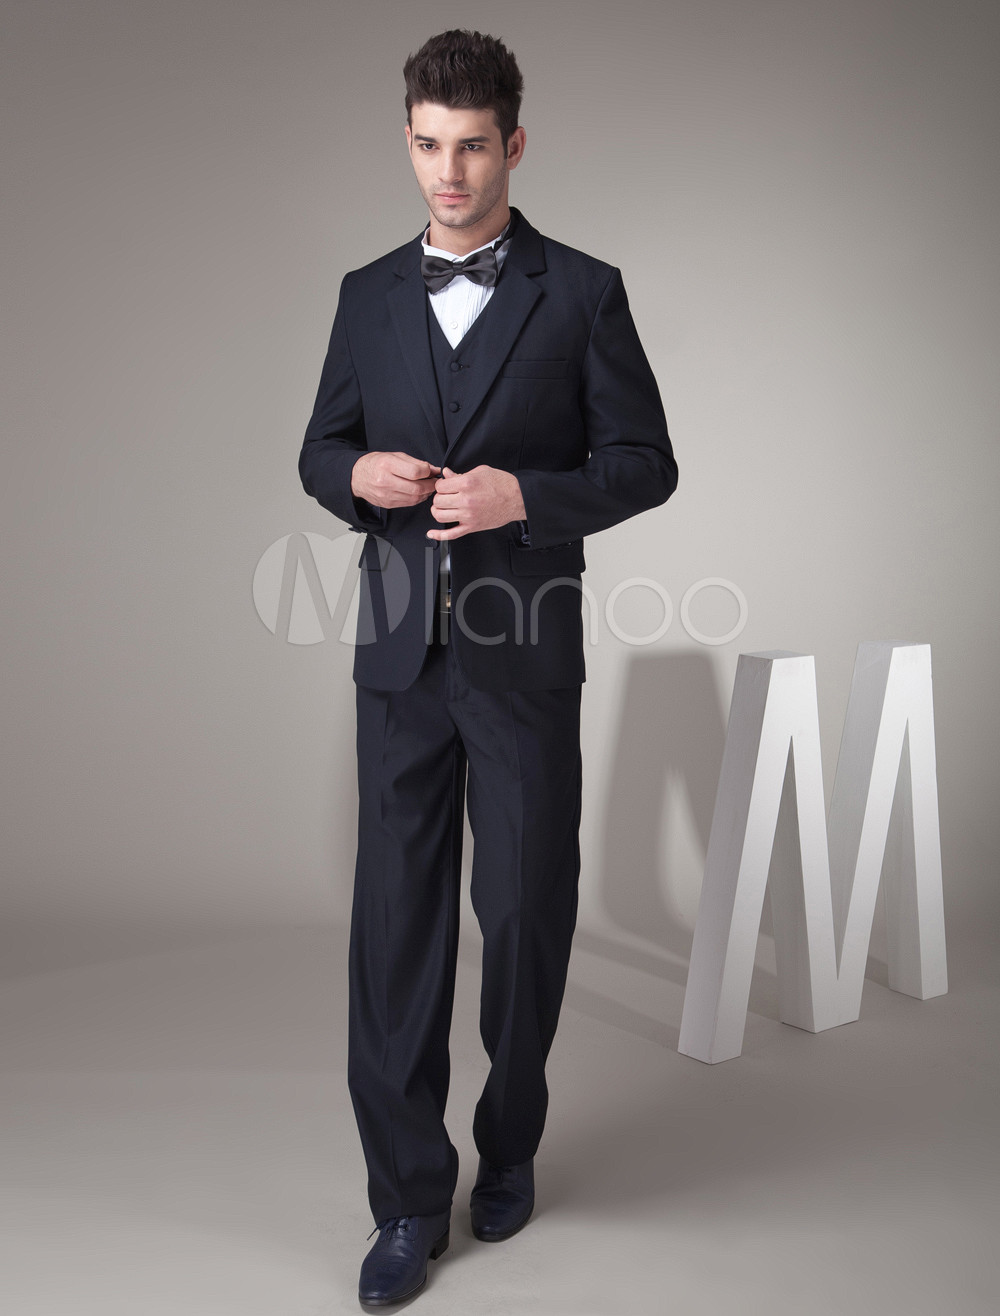 Navy Blue Wedding Tuxedo